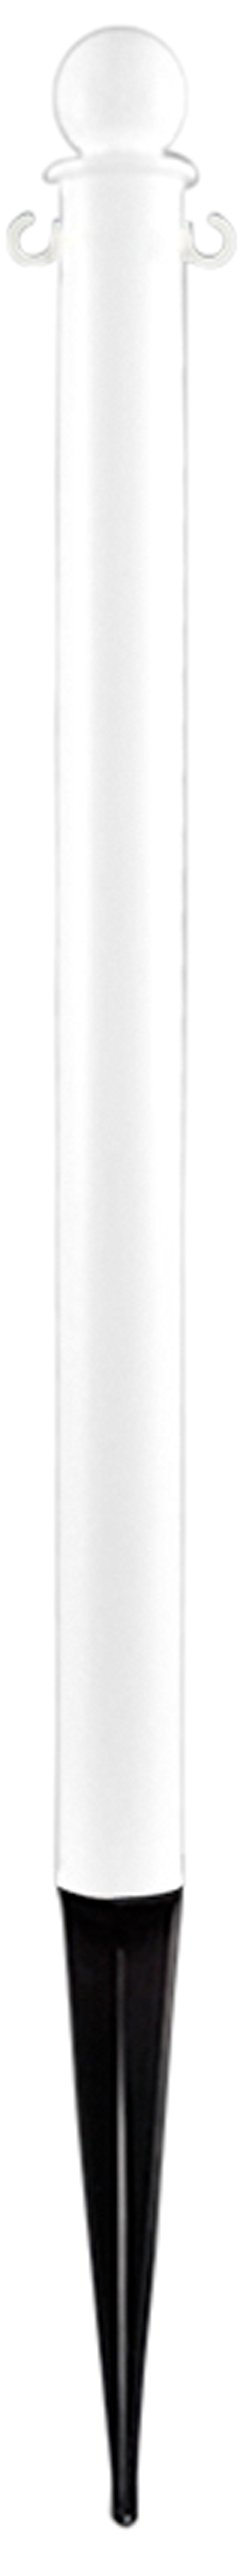 Mr. Chain 95401-6 Deluxe Ground Pole, 2-1/2'' Diameter x 35'' Height, White (Pack of 6) by Mr. Chain